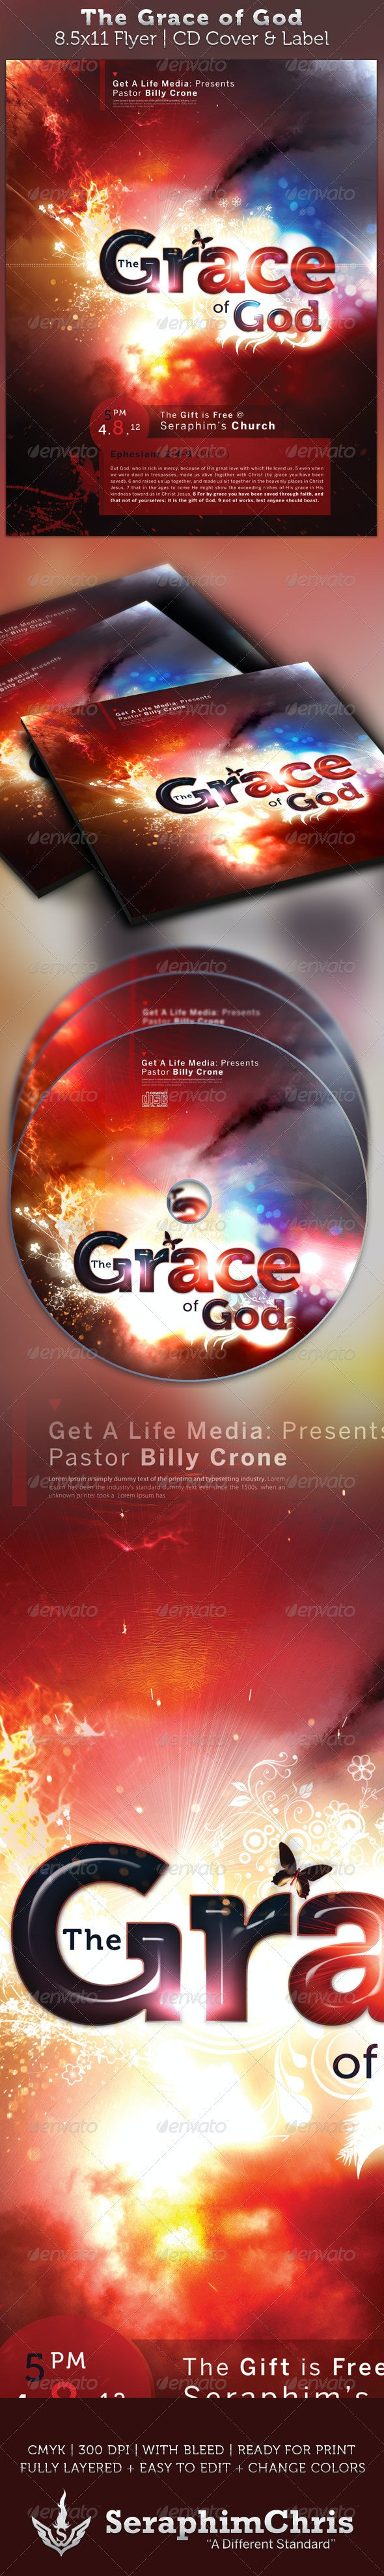 The Grace of God Full Page Flyer and CD Cover      - Church Flyers